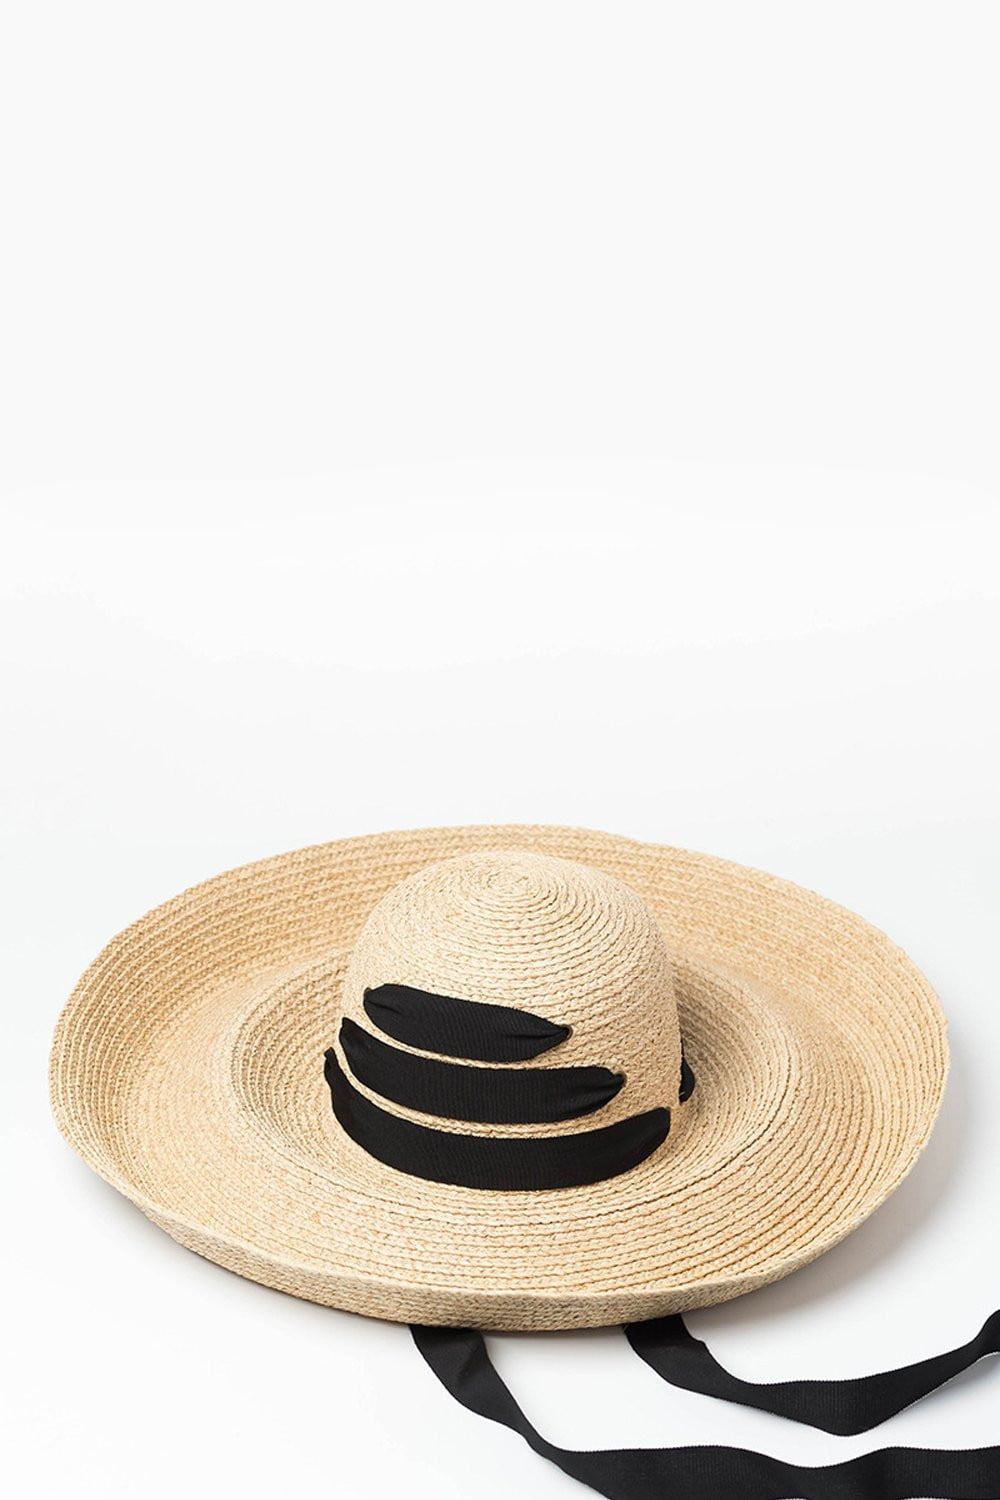 381b21770f2fa Raffia Straw Curved Brim Sun Hat With Chin Tie – FloralKini